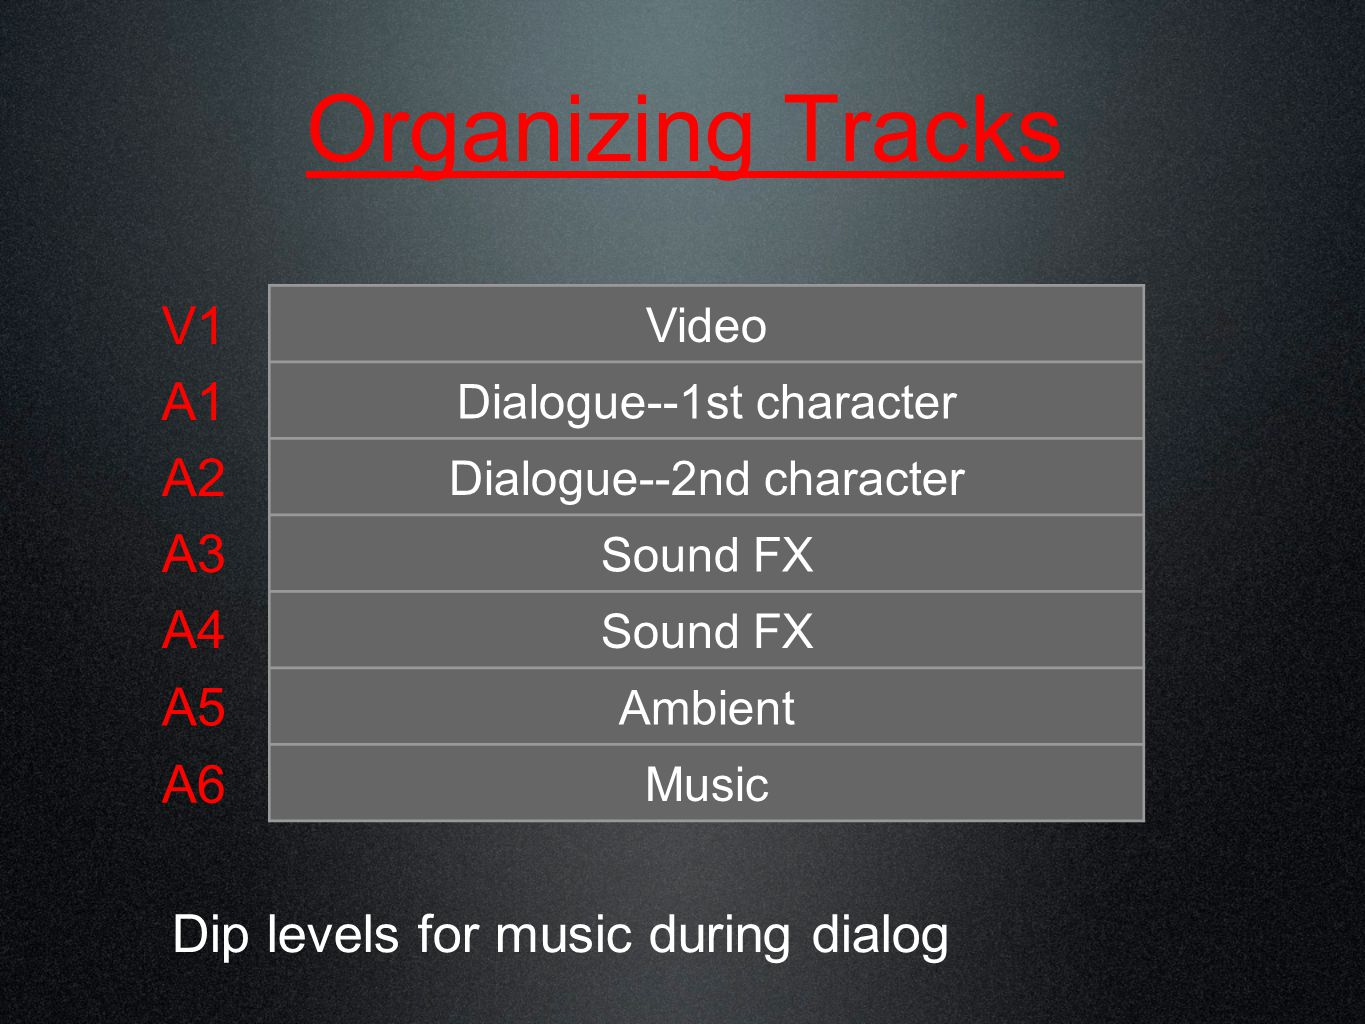 Organizing Tracks V1 A1 A2 A3 A4 A5 A6 Video Dialogue--1st character Dialogue--2nd character Sound FX Ambient Music Dip levels for music during dialog